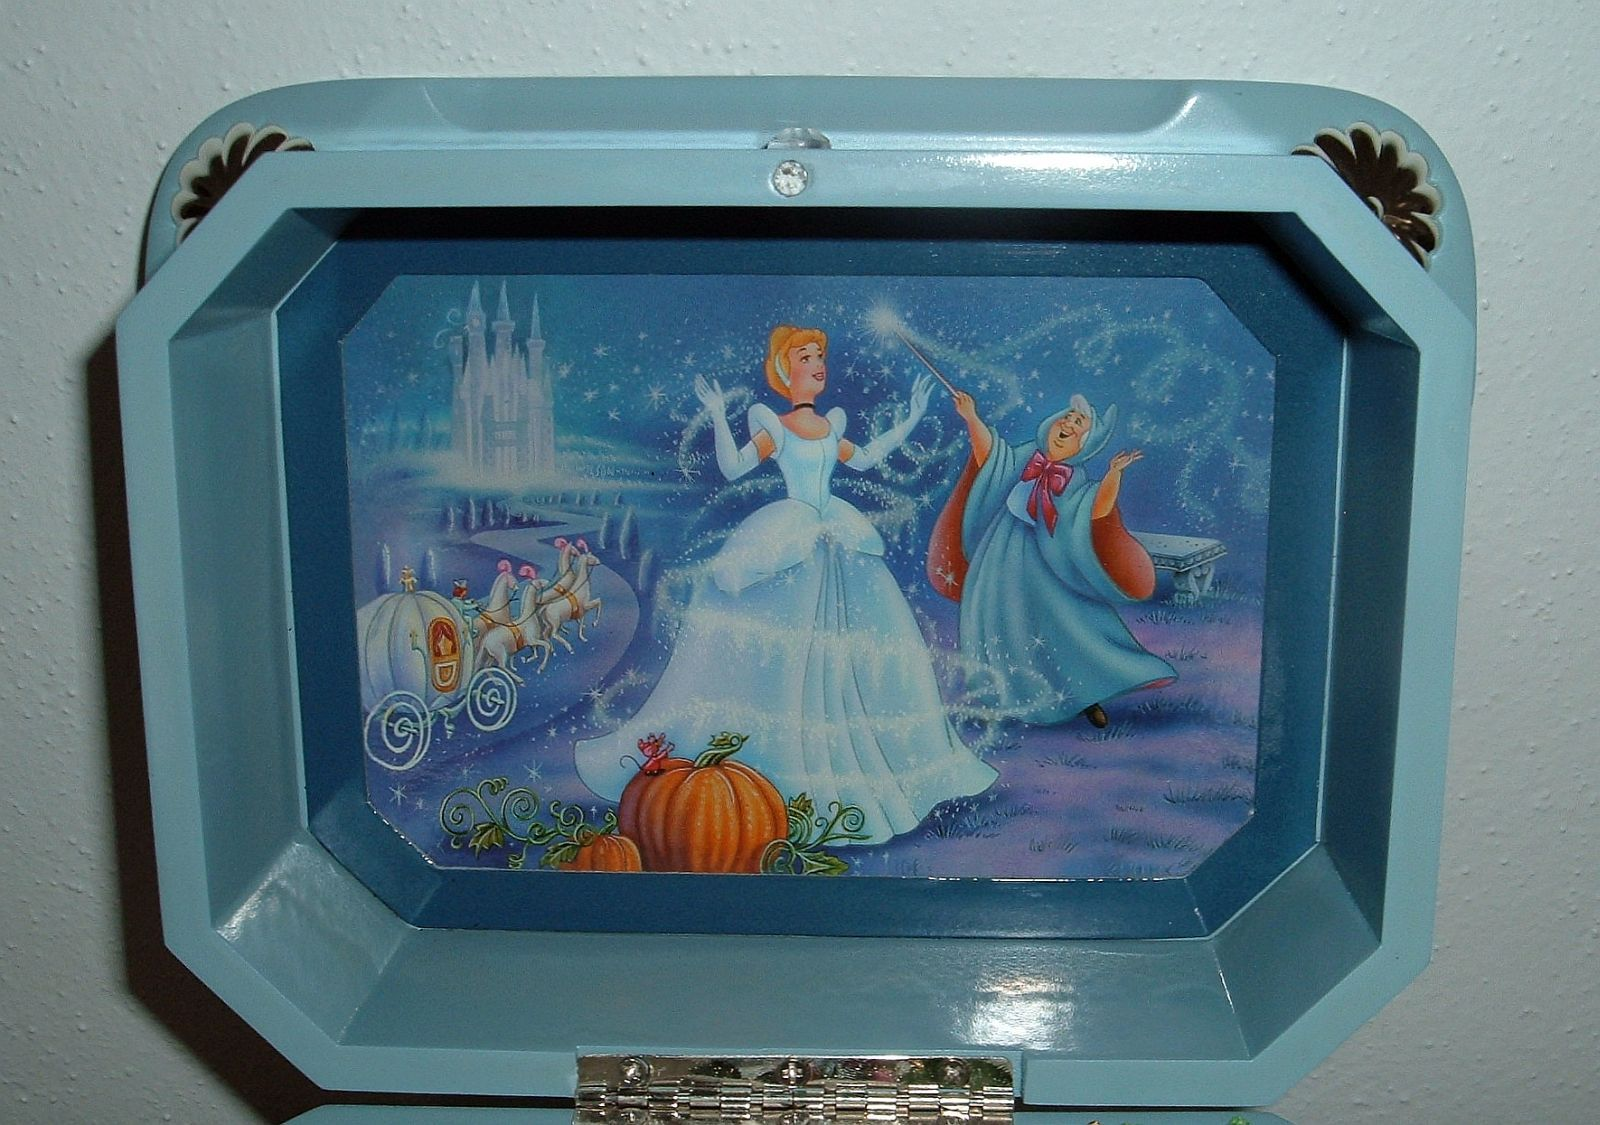 Disney Cinderella Dance Ever After Limited Edition Music Box First Issue image 4